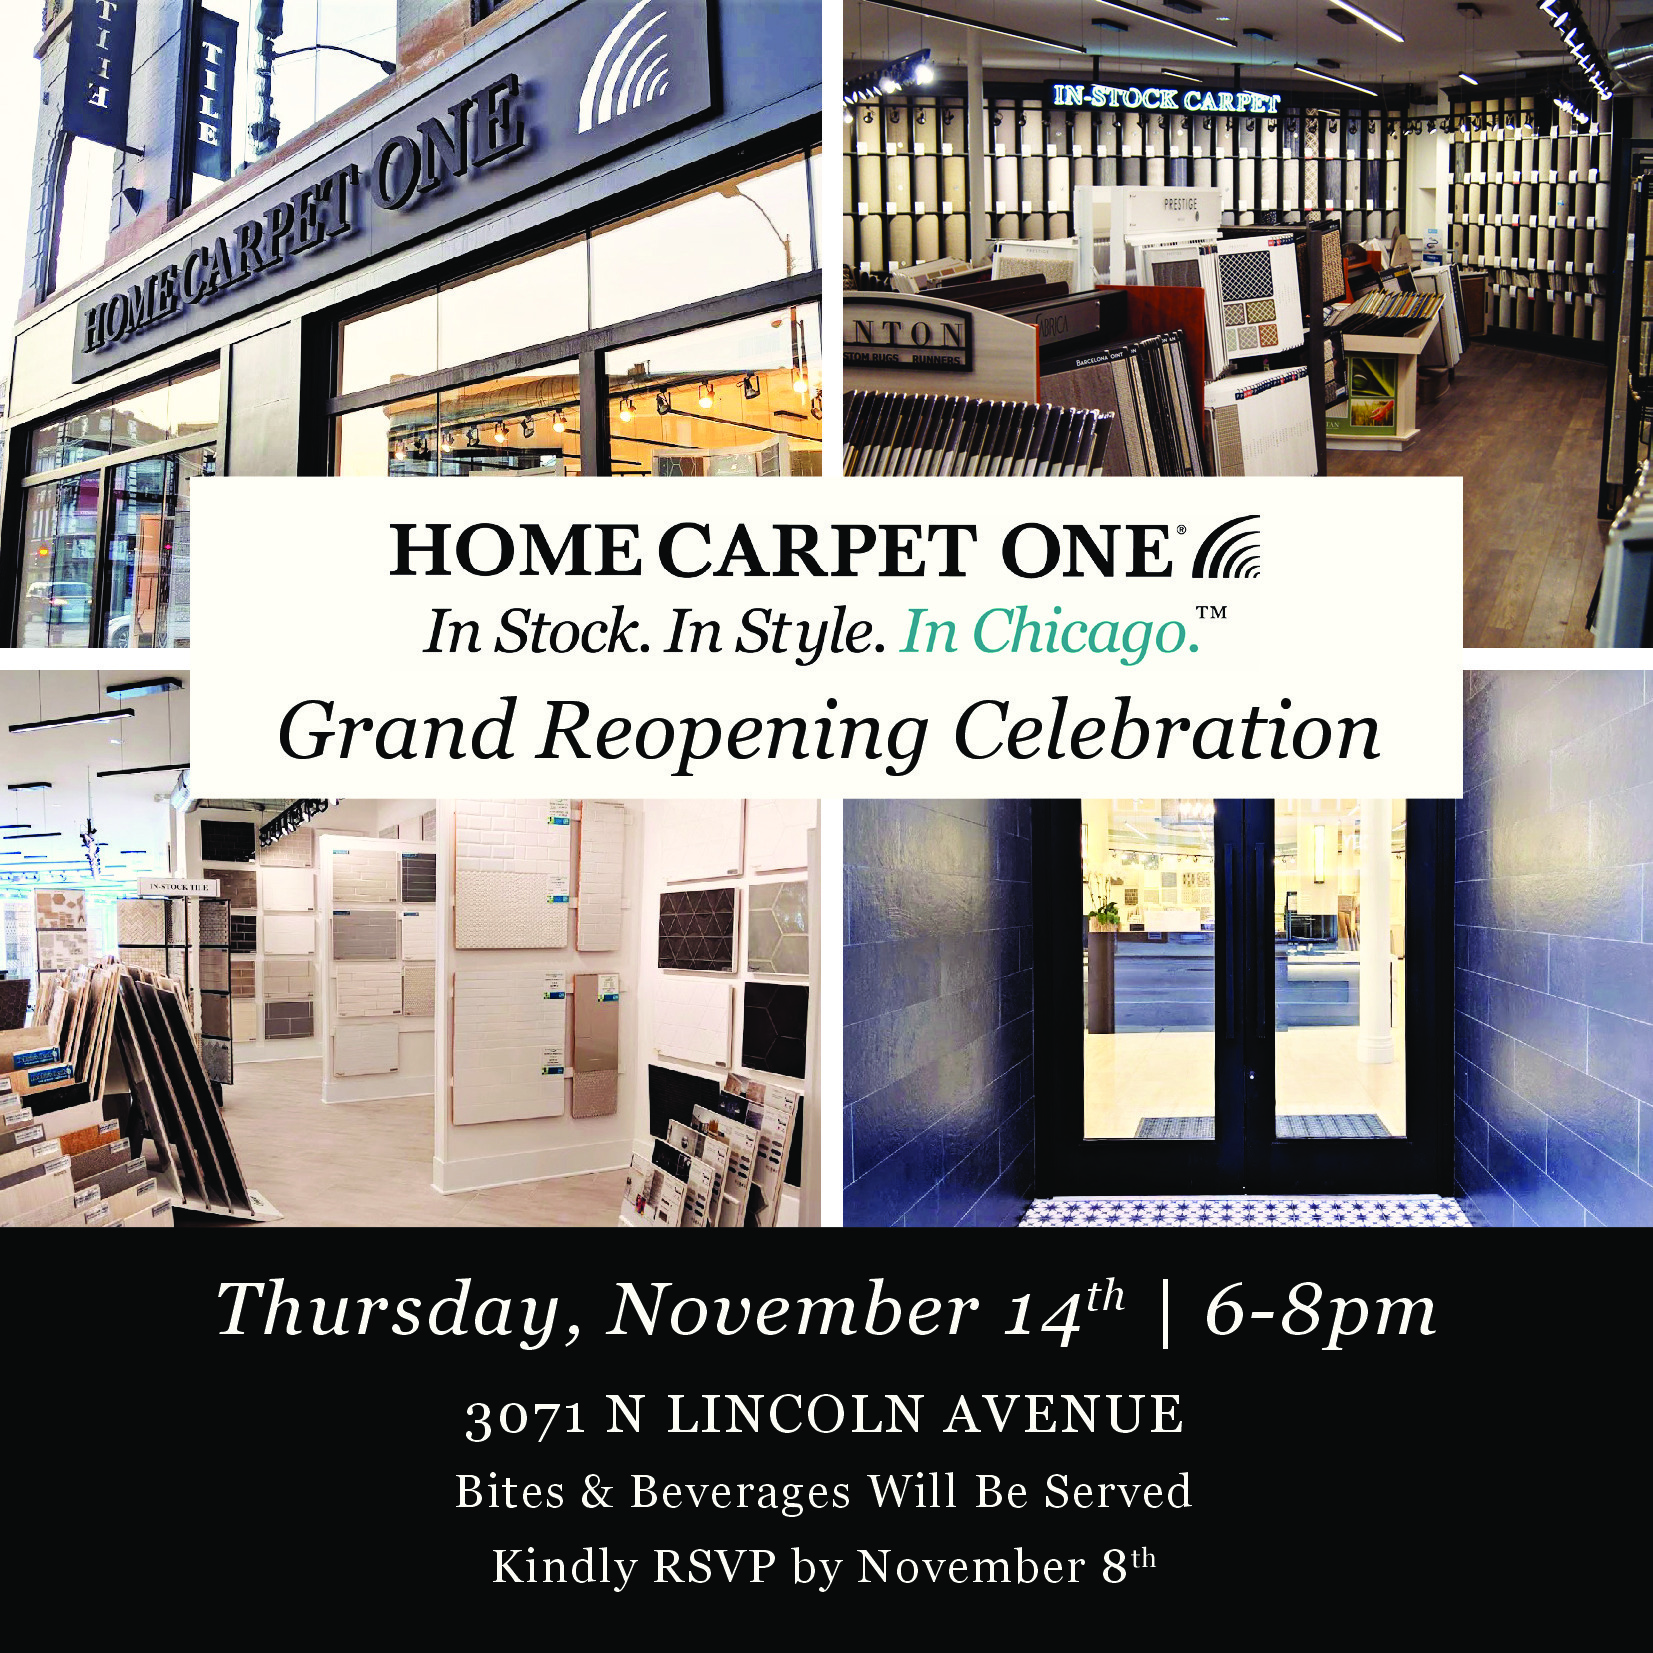 Home Carpet One new showroom event